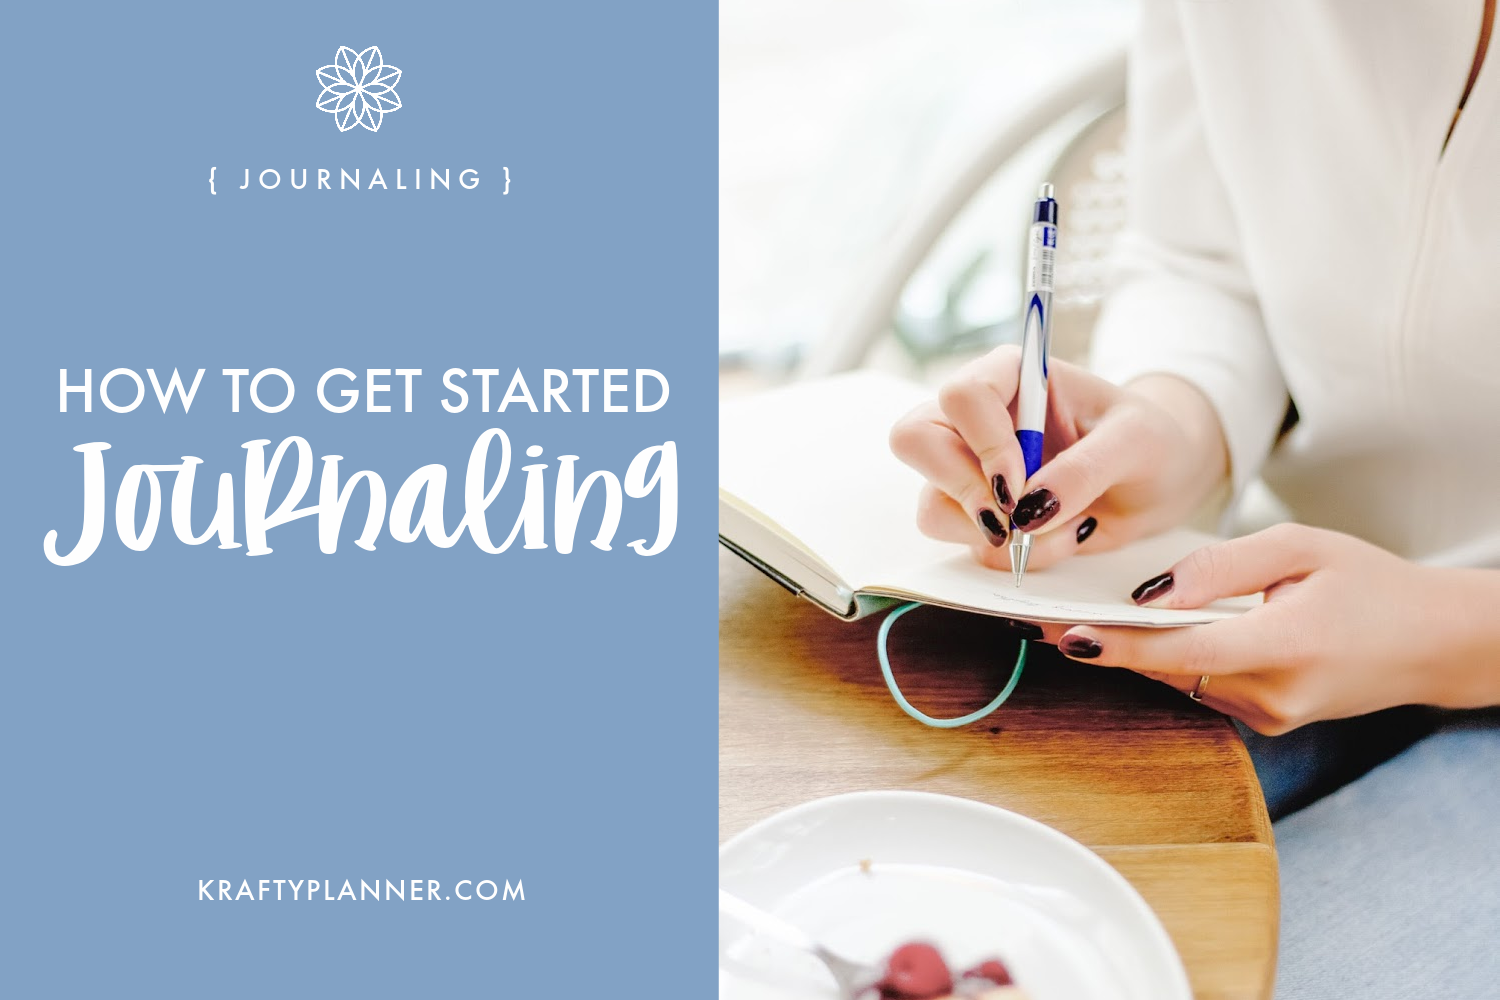 How to Get Started Writing a Journal Main Image.png